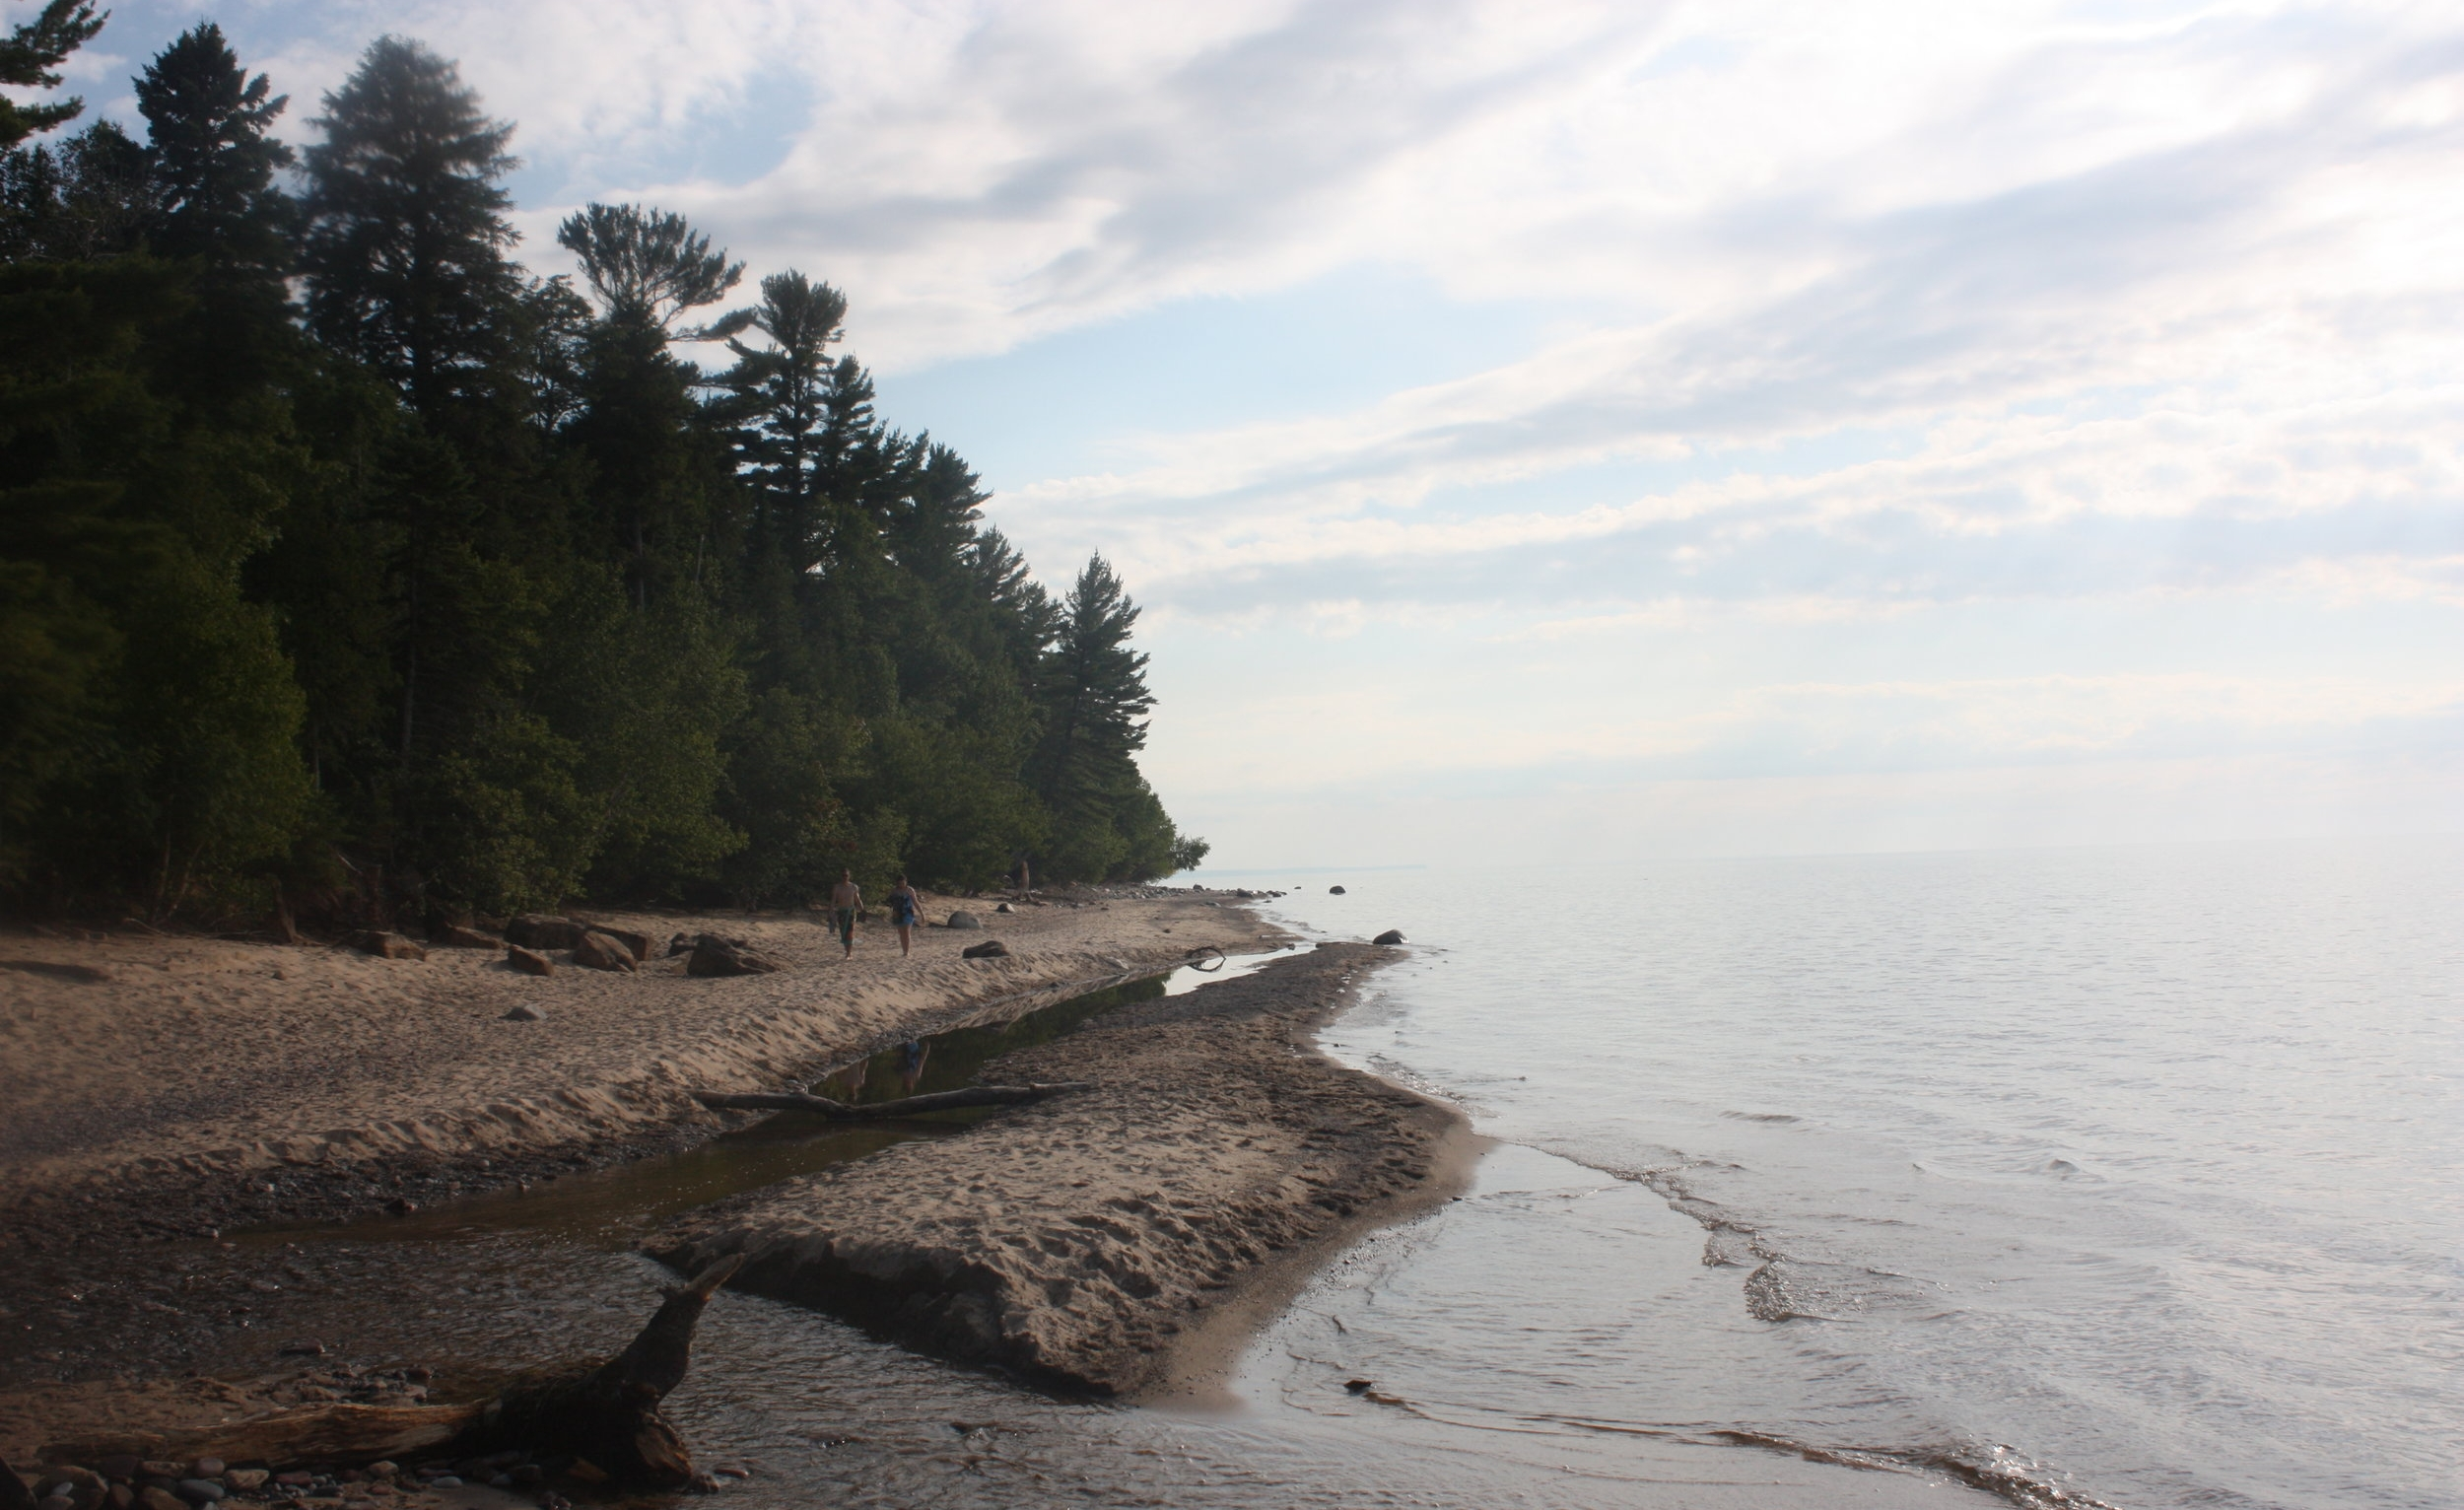 Lake Superior near the Hurricane River Campground off Highway 58